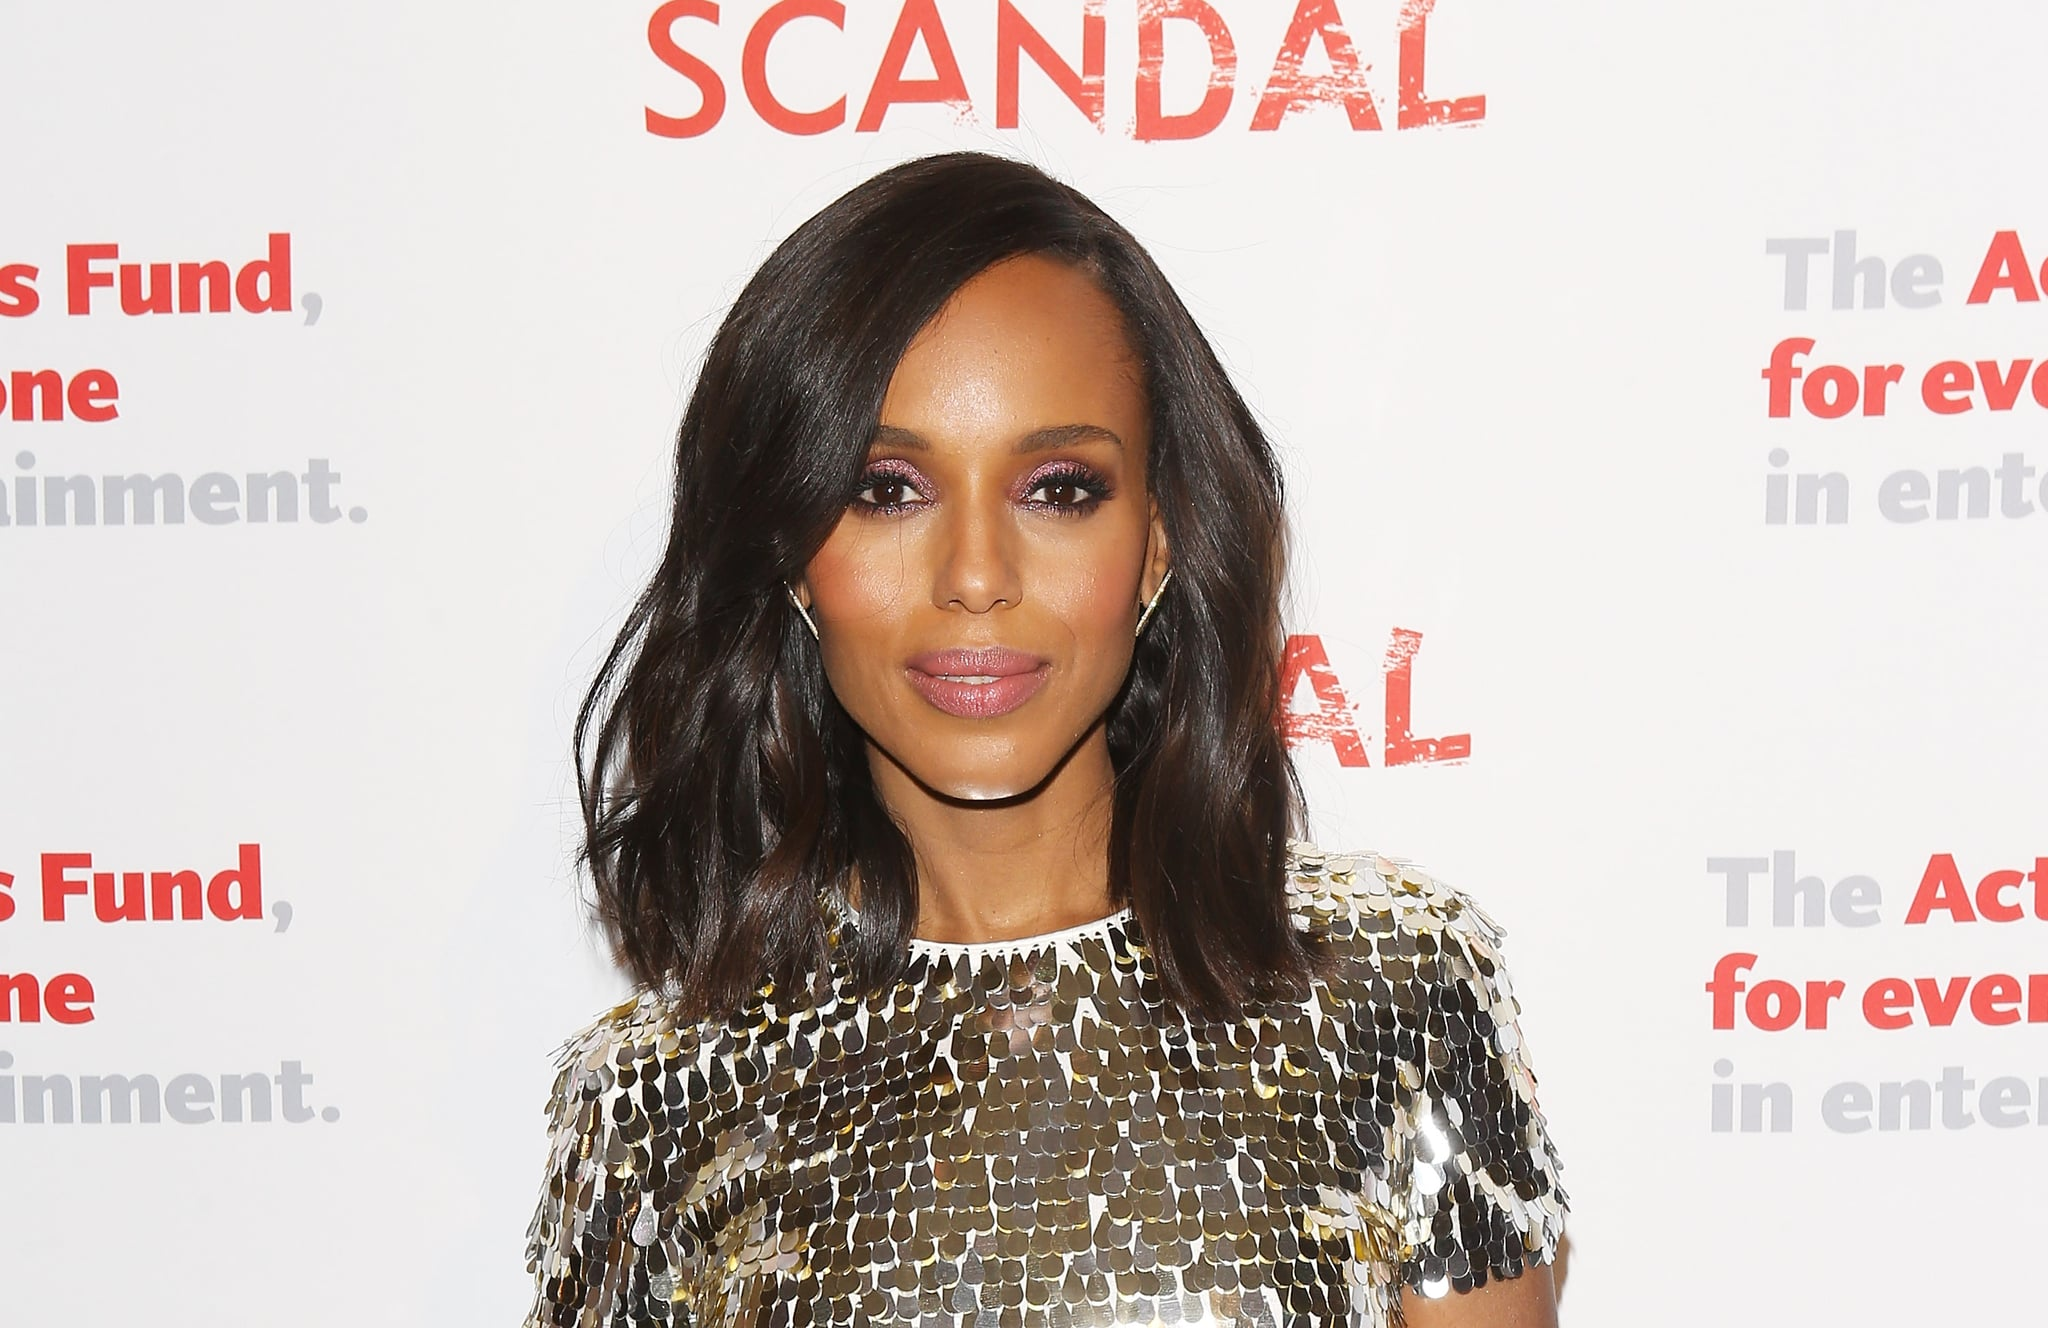 LOS ANGELES, CA - APRIL 19:  Kerry Washington arrives to the Scandal live stage reading of series finale to Benefit The Actors Fund held at El Capitan Theatre on April 19, 2018 in Los Angeles, California.  (Photo by Michael Tran/Getty Images)